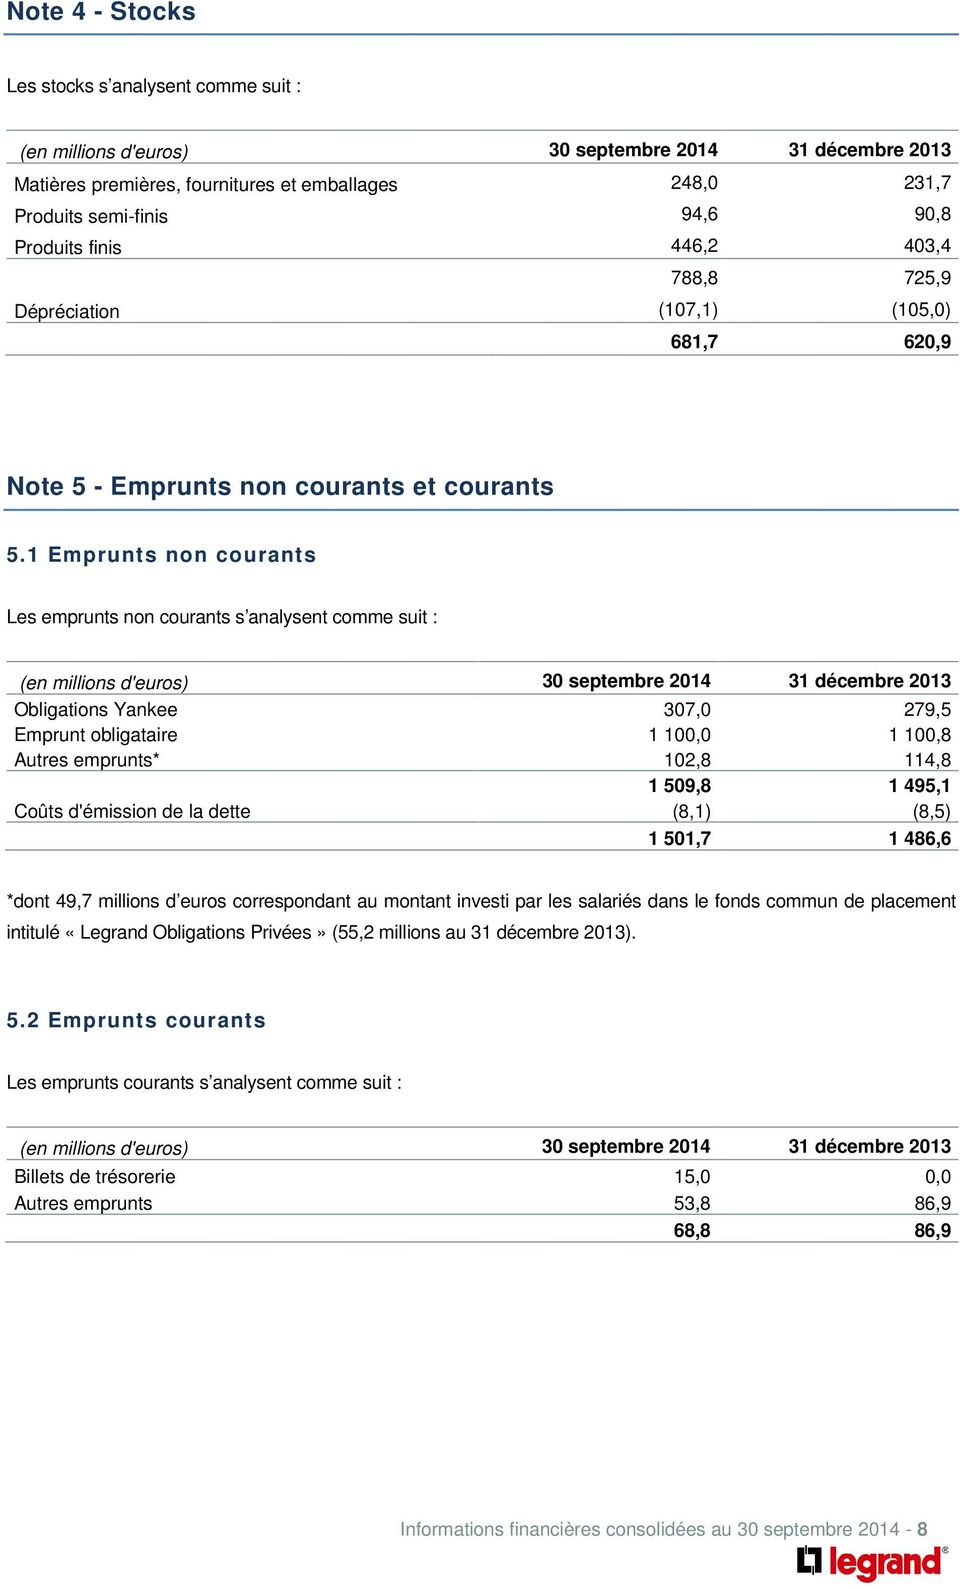 1 Emprunts non courants Les emprunts non courants s analysent comme suit : (en millions d'euros) 30 septembre 2014 31 décembre 2013 Obligations Yankee 307,0 279,5 Emprunt obligataire 1 100,0 1 100,8